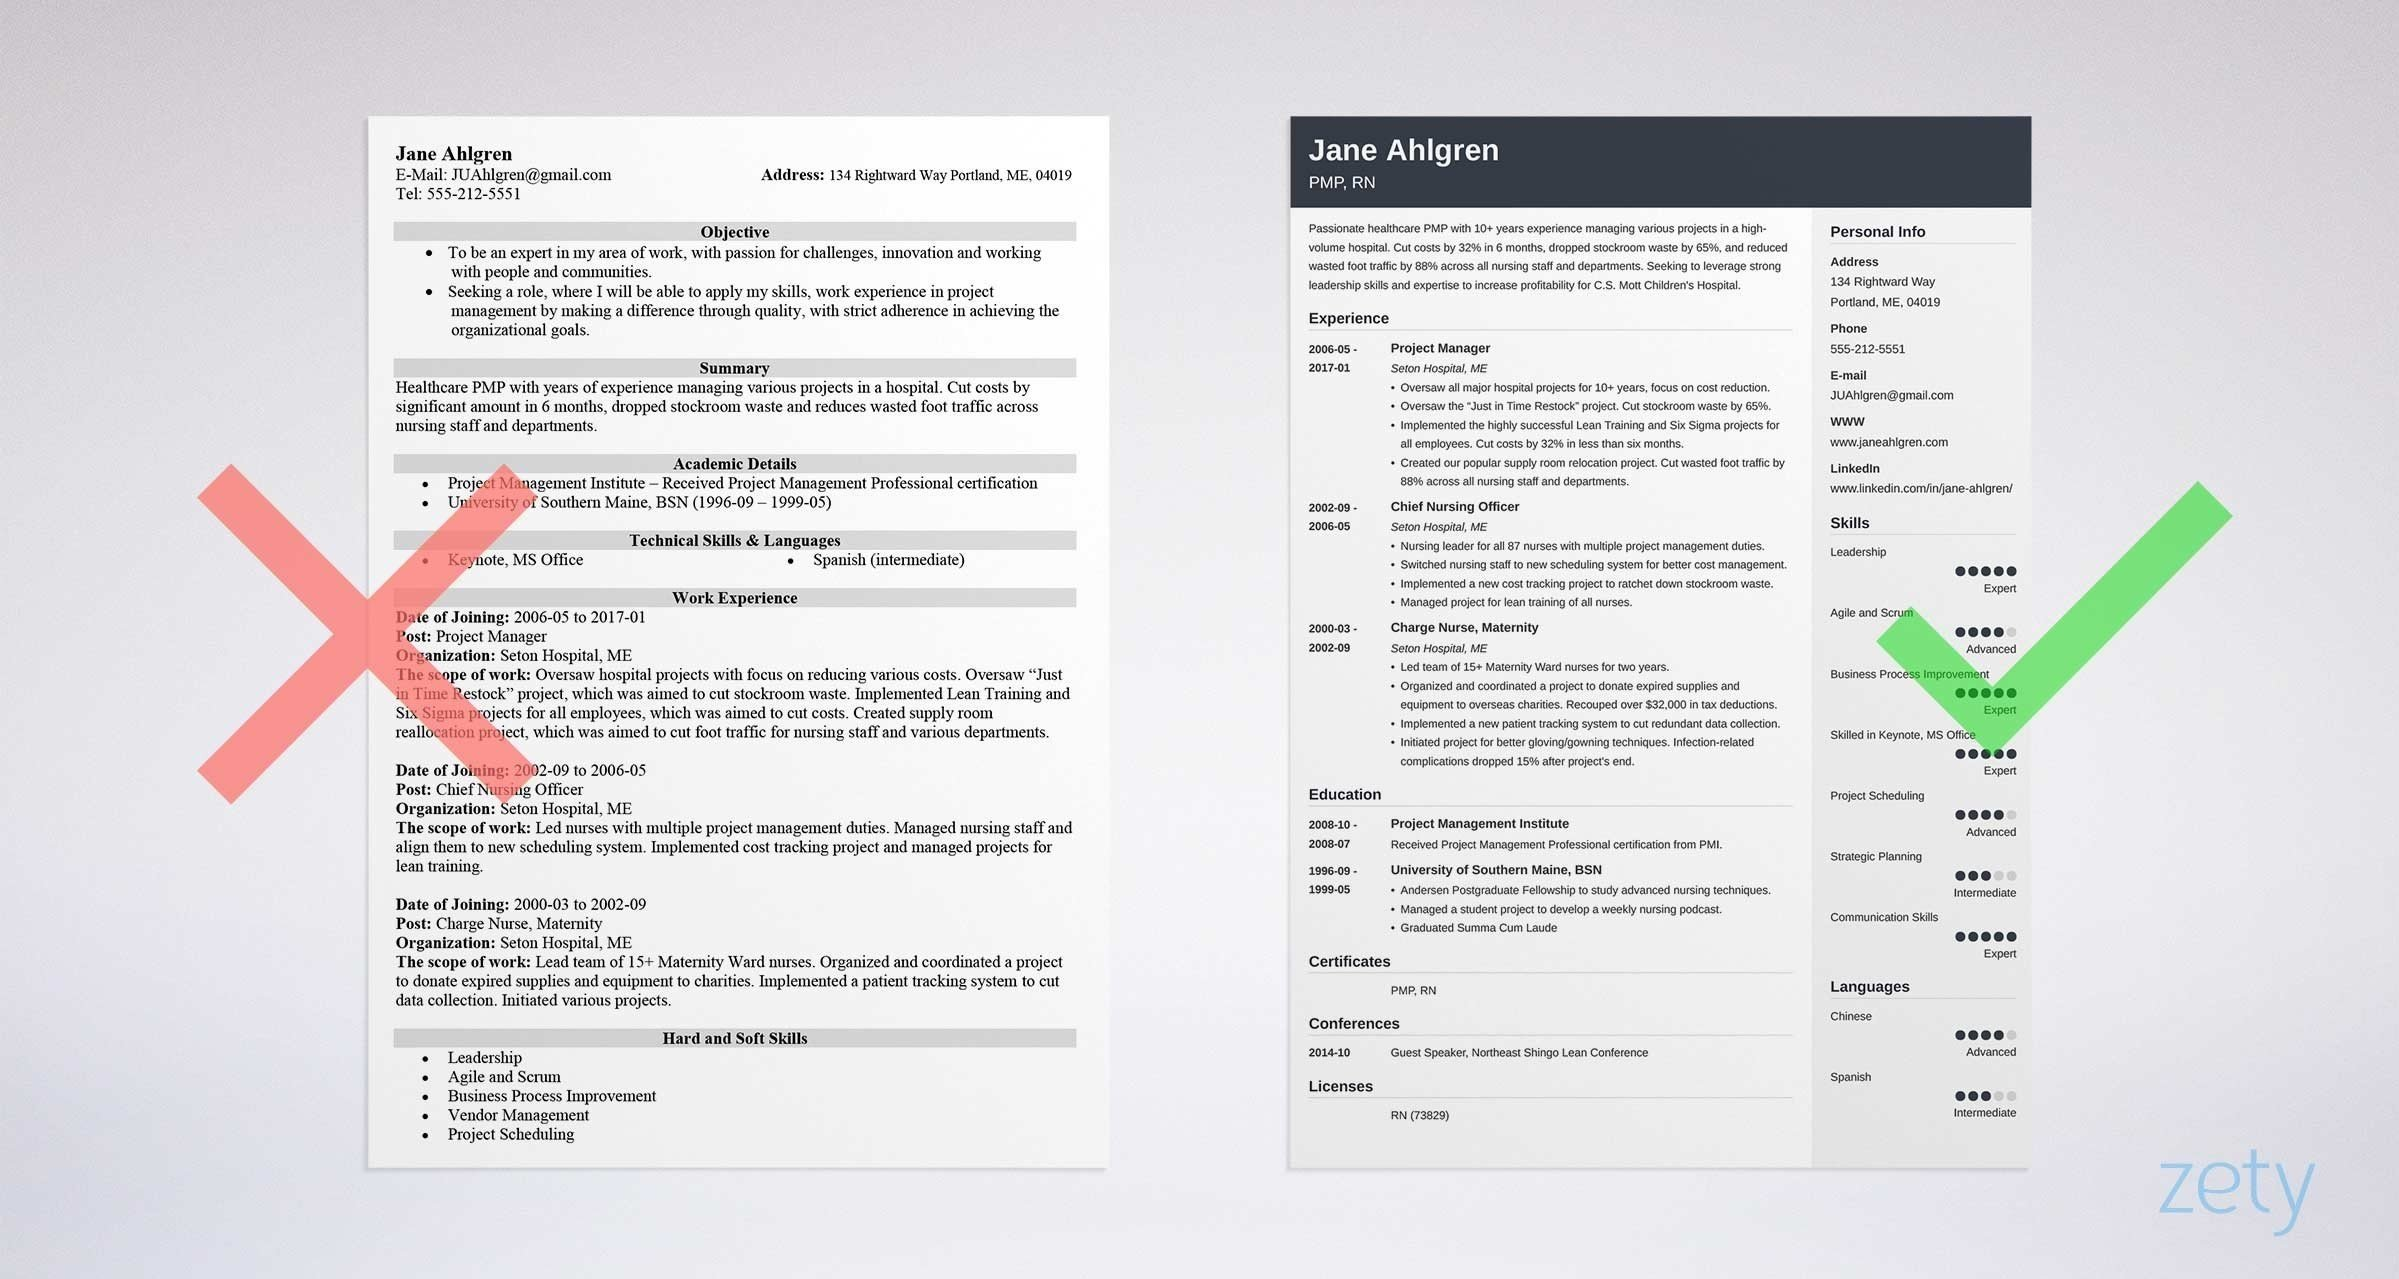 Resume Sections to Include on Your Resume: Guide (+20 Examples)